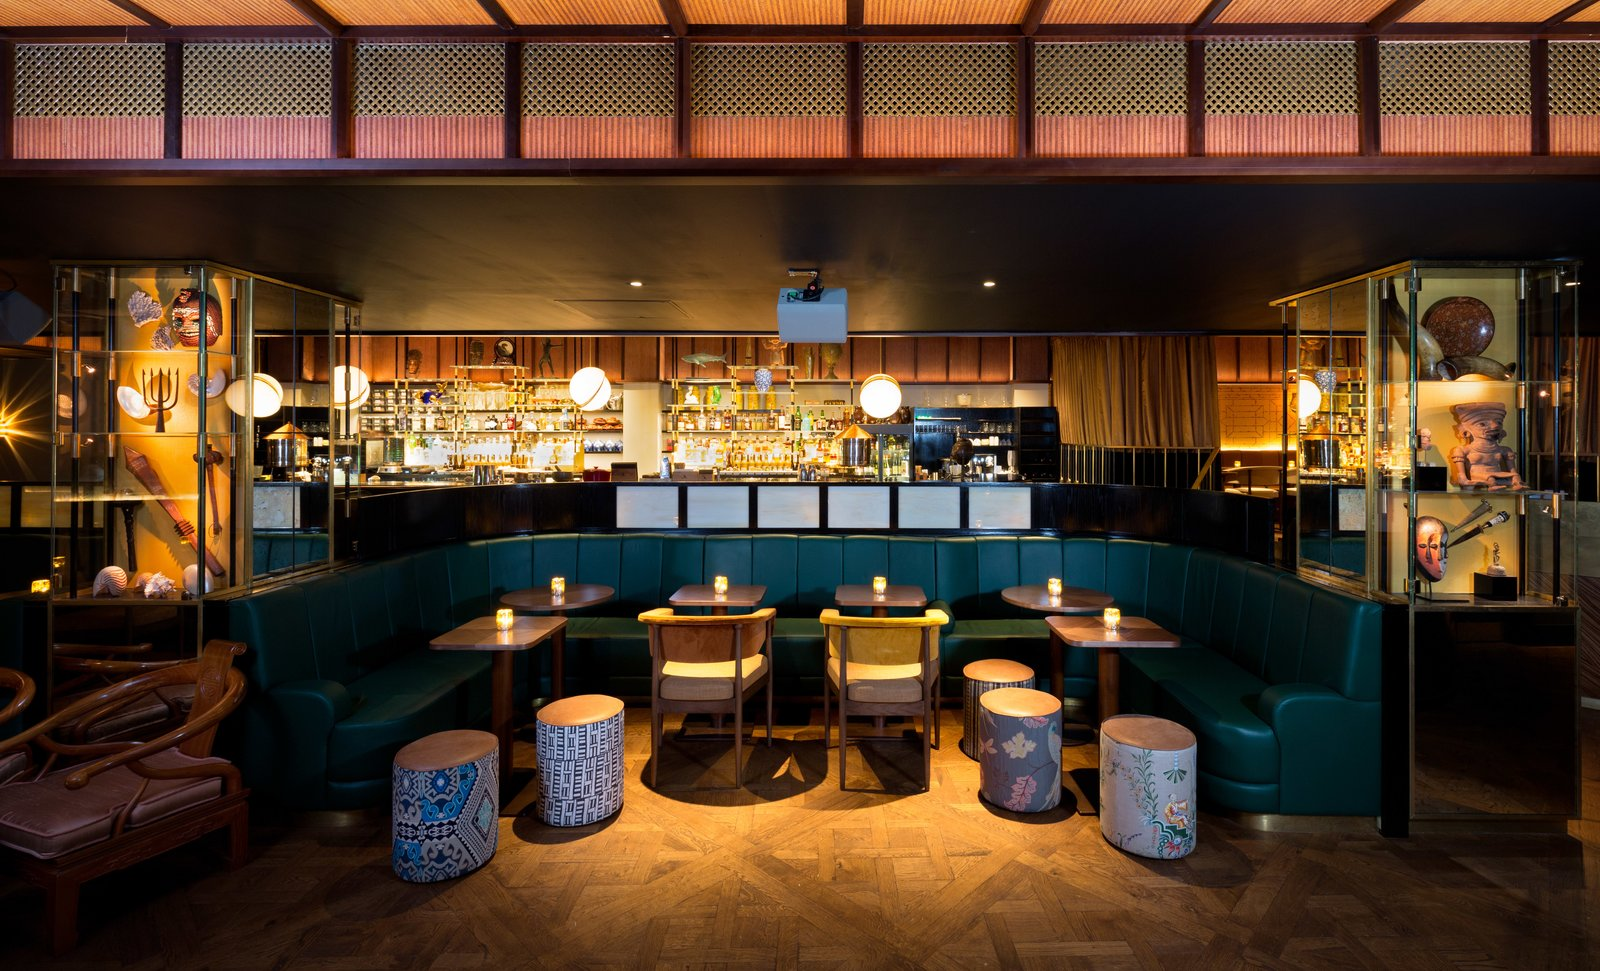 10 London Bars Every Design Lover Should Visit - Dwell